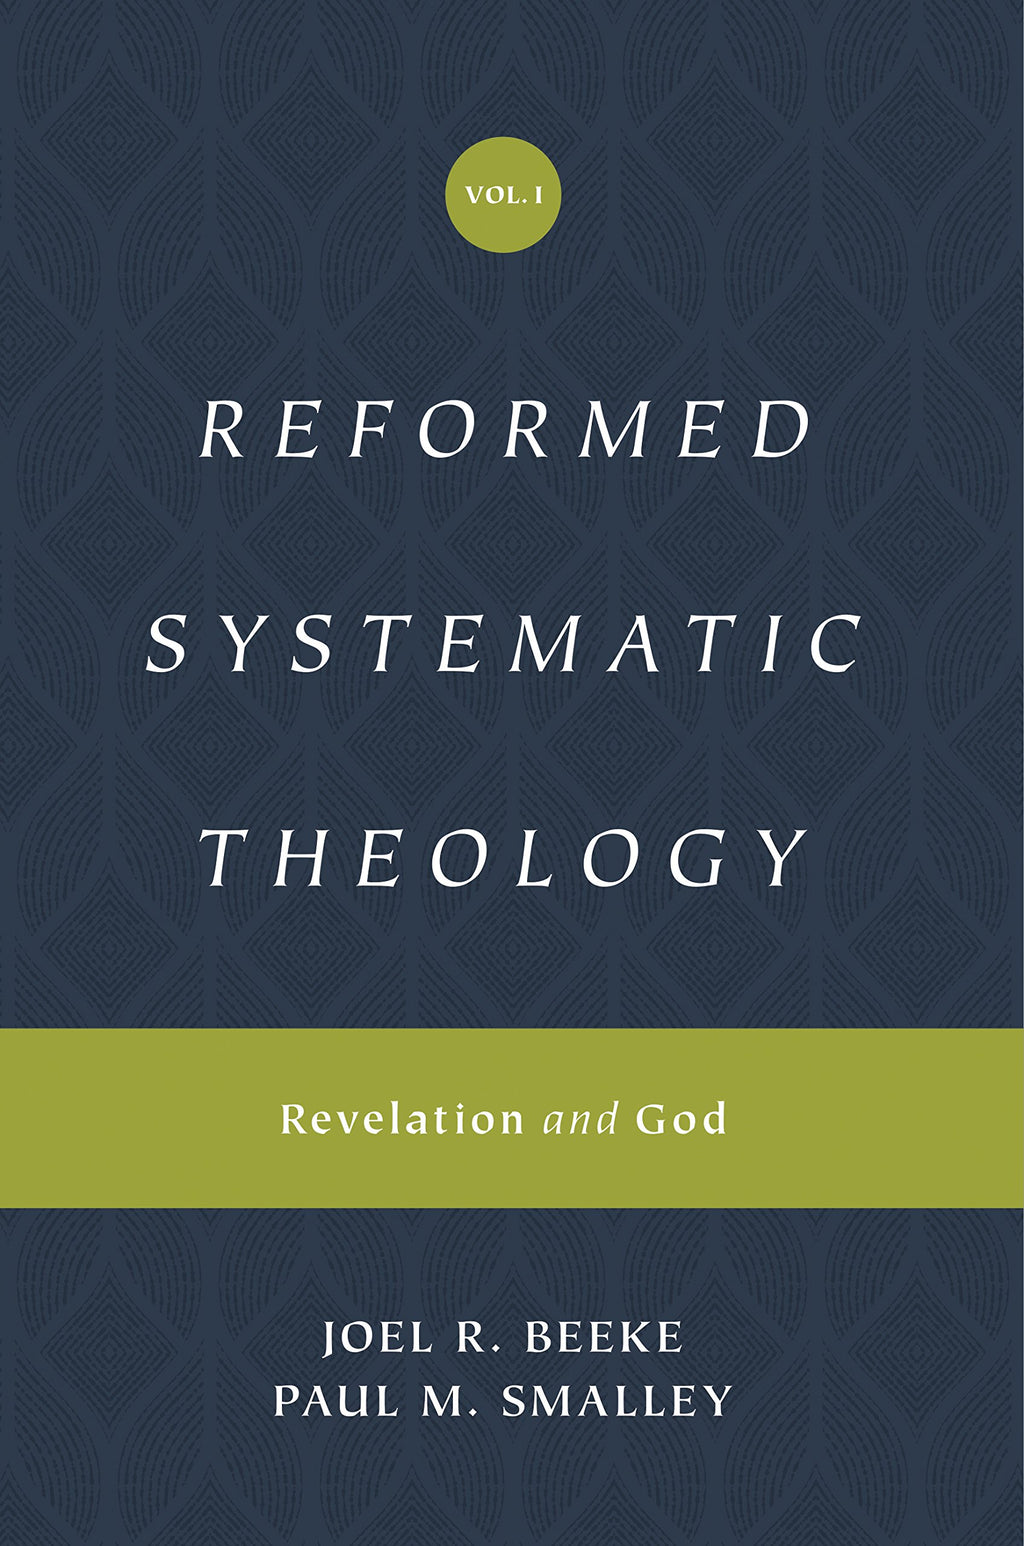 Reformed Systematic Theology, Volume 1: Revelation and God